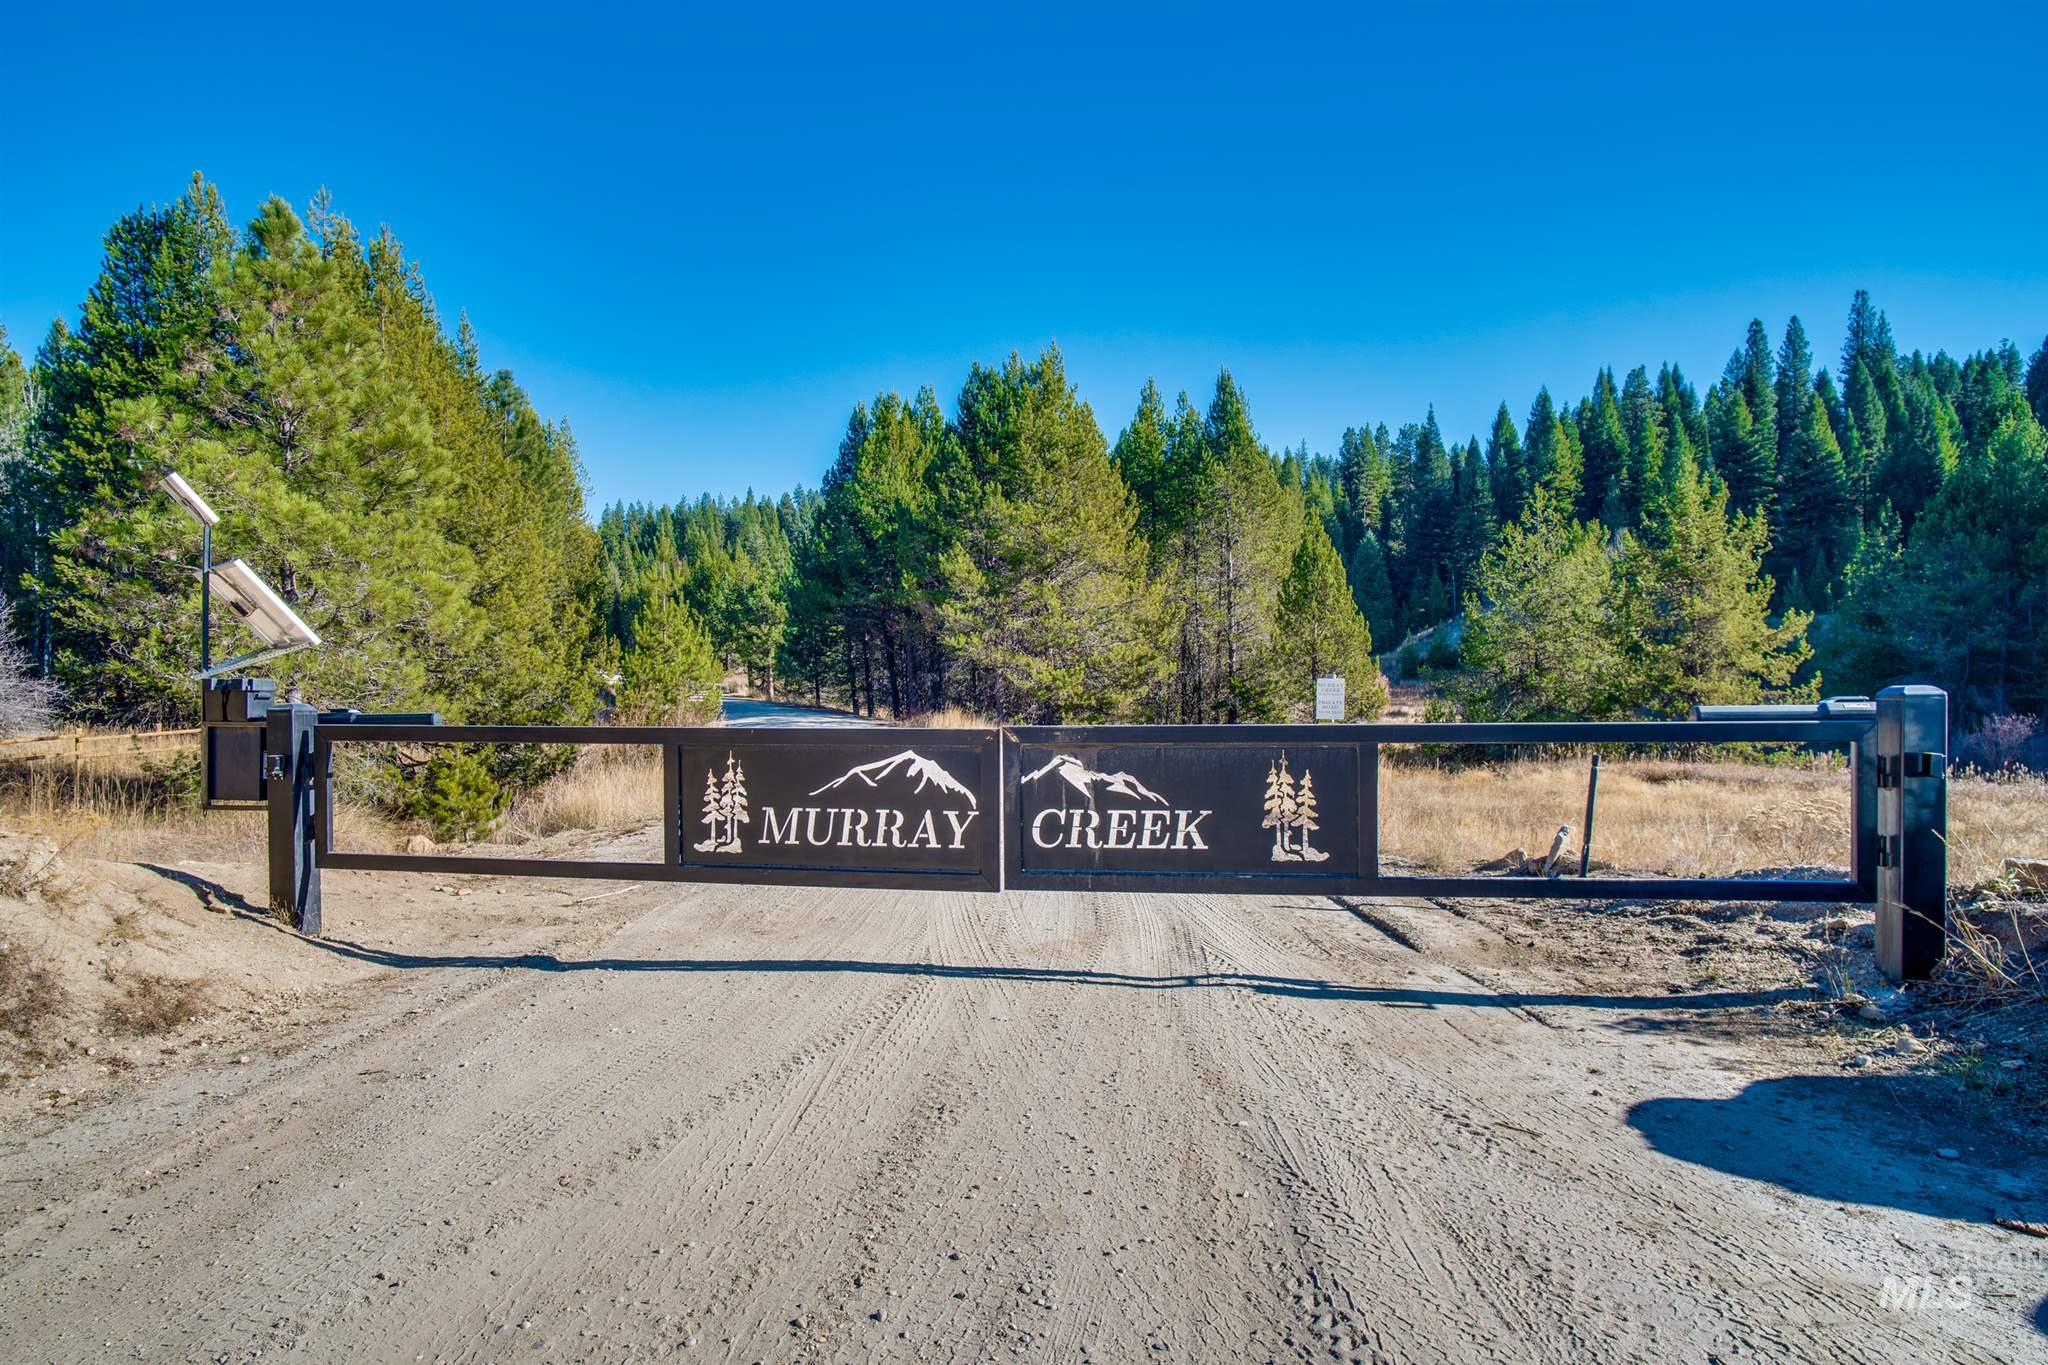 240 Upper Murray Creek Road, Cascade, Idaho 83611, Land For Sale, Price $165,000, 98786577